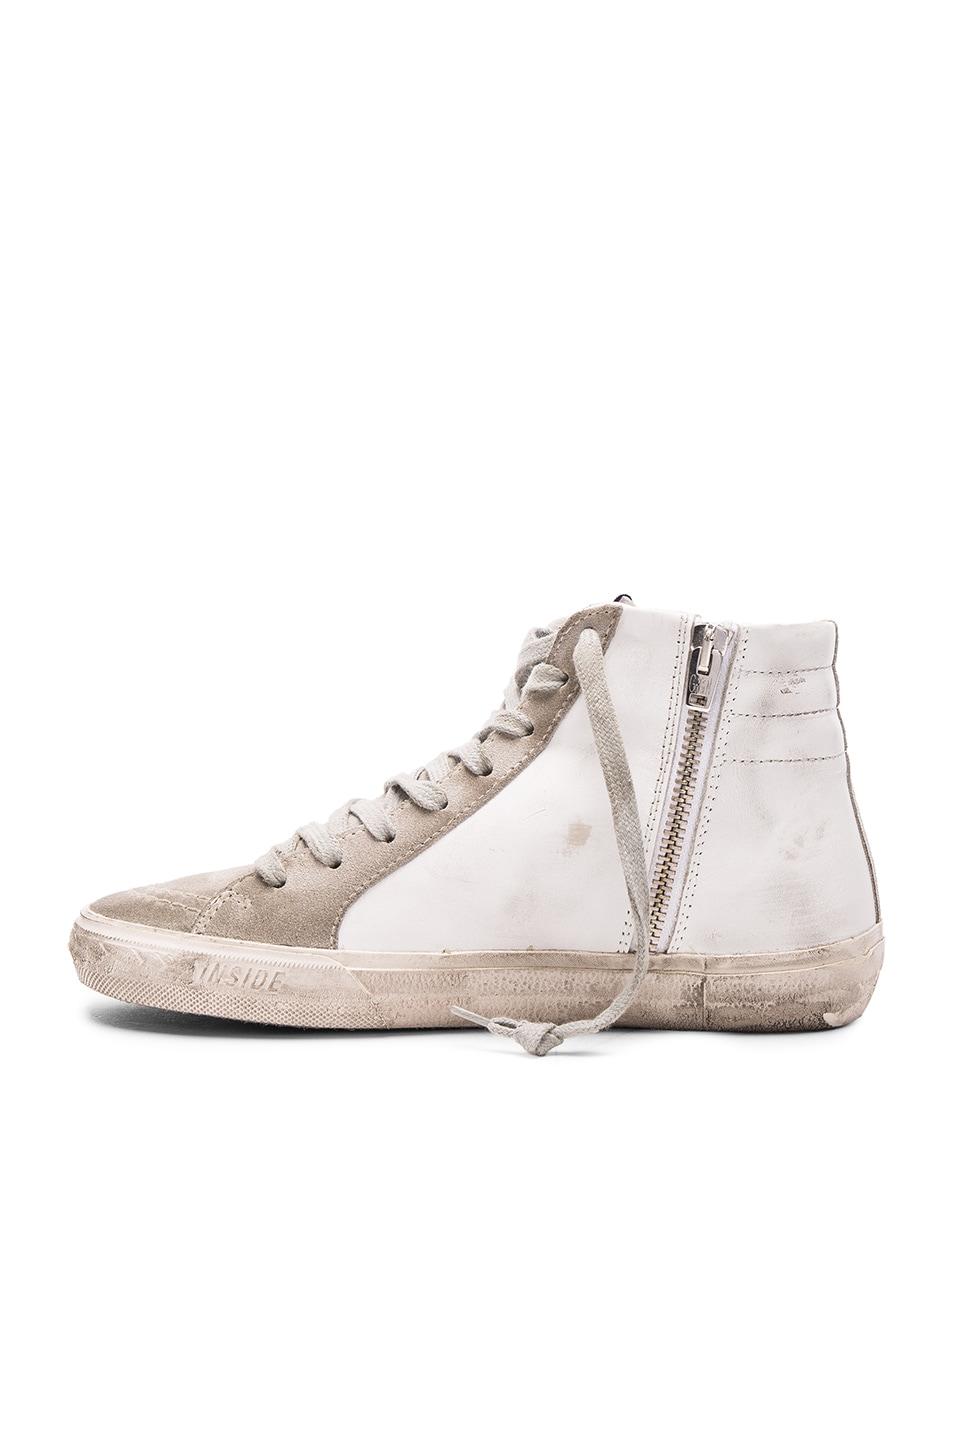 Image 5 of Golden Goose Slide Sneakers in White Leather